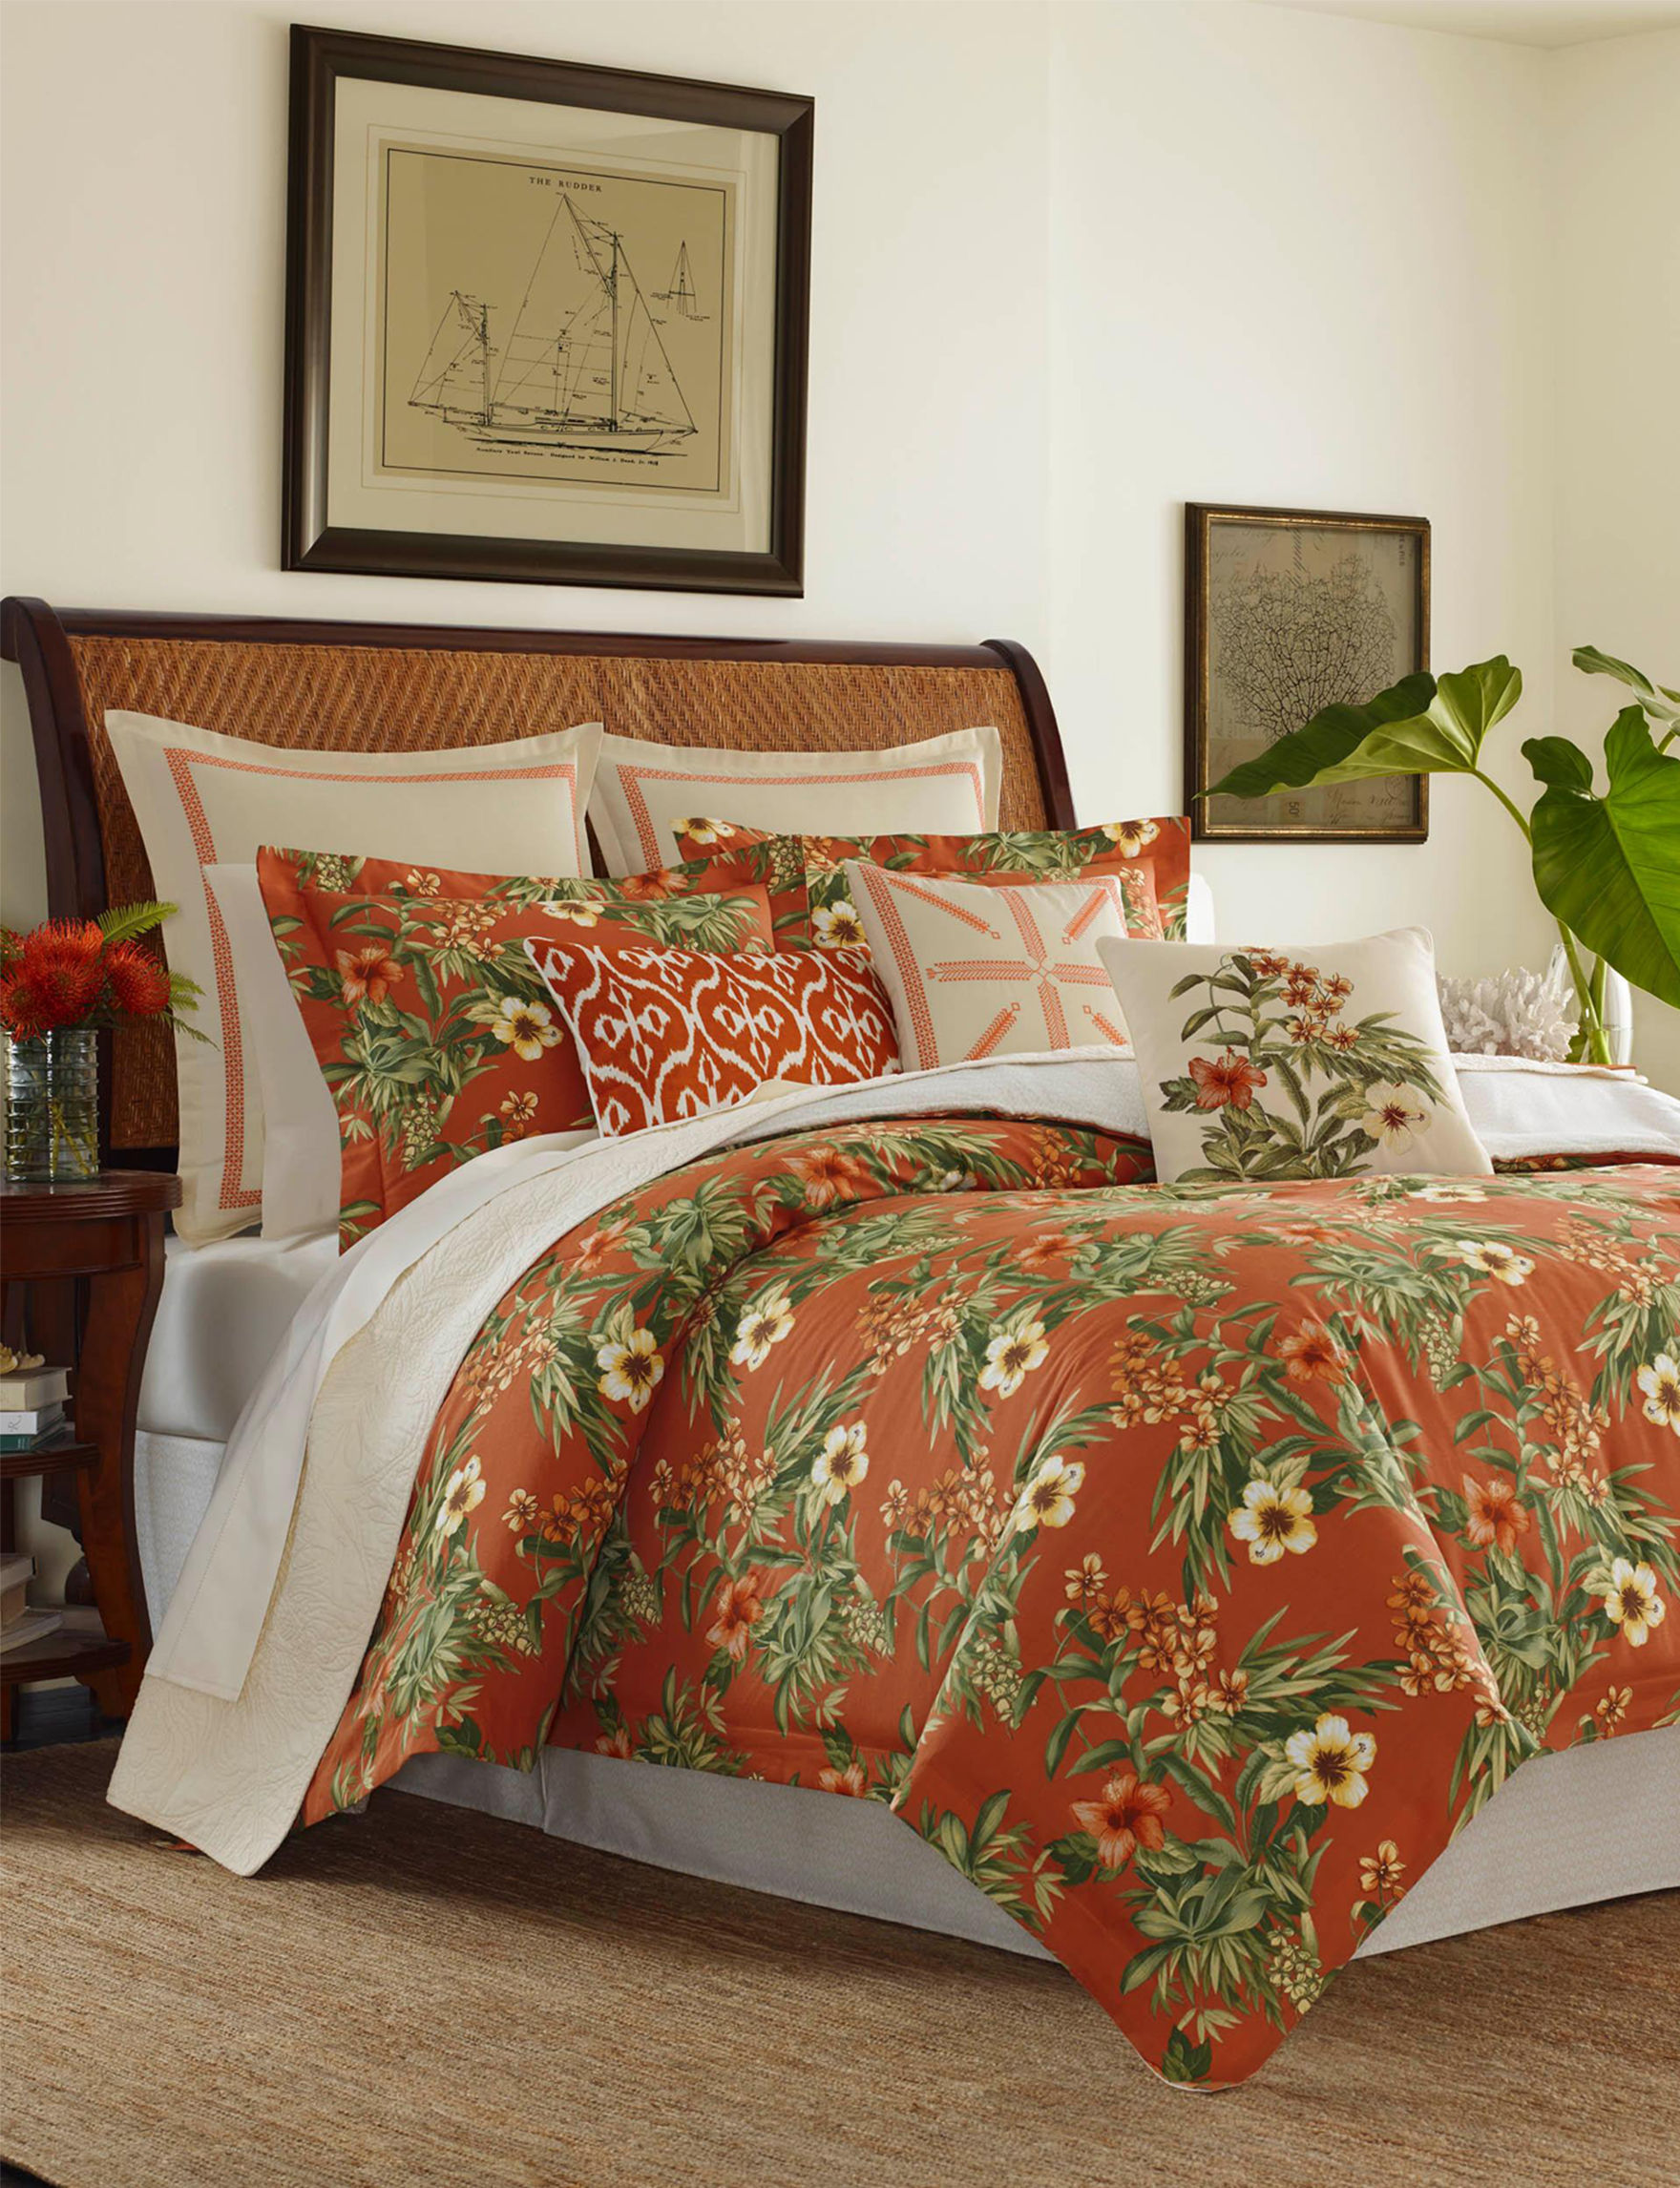 Tommy Bahama Red Comforters & Comforter Sets